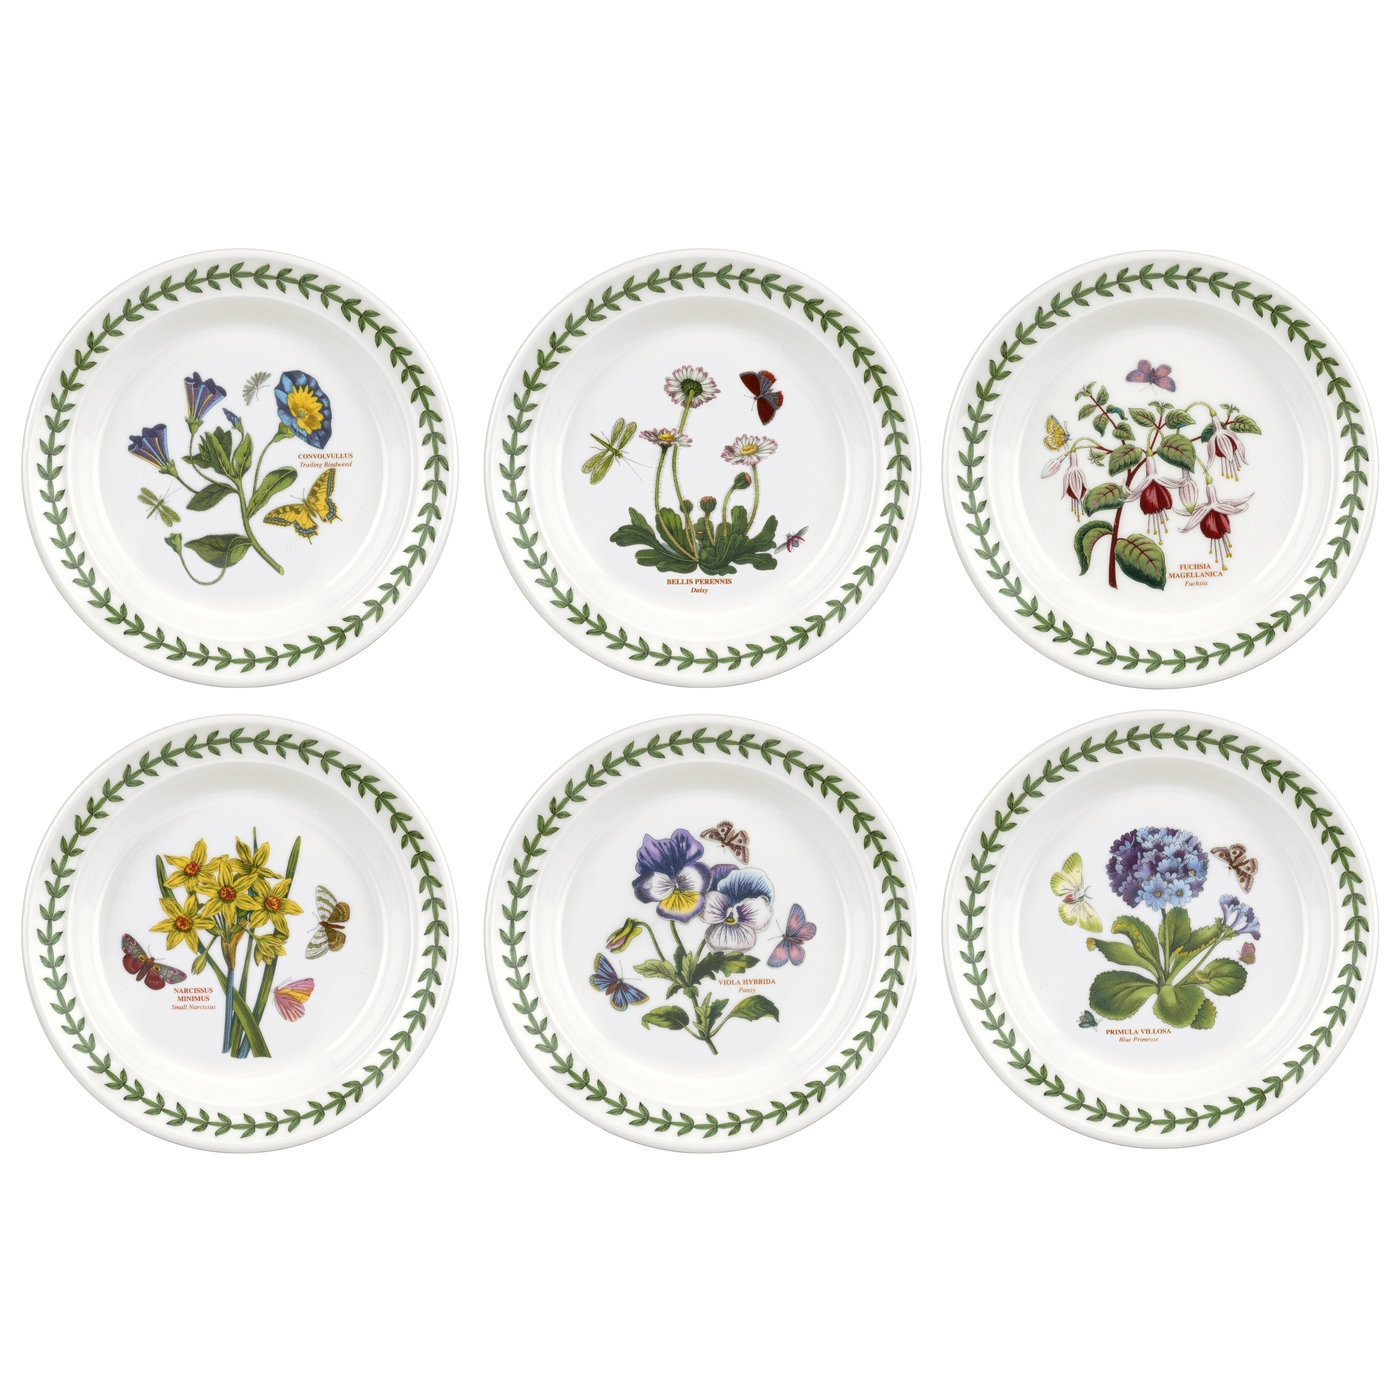 Botanic Garden 6.5 Inch Side Plate Set of 6 (Assorted Motifs) image number 0